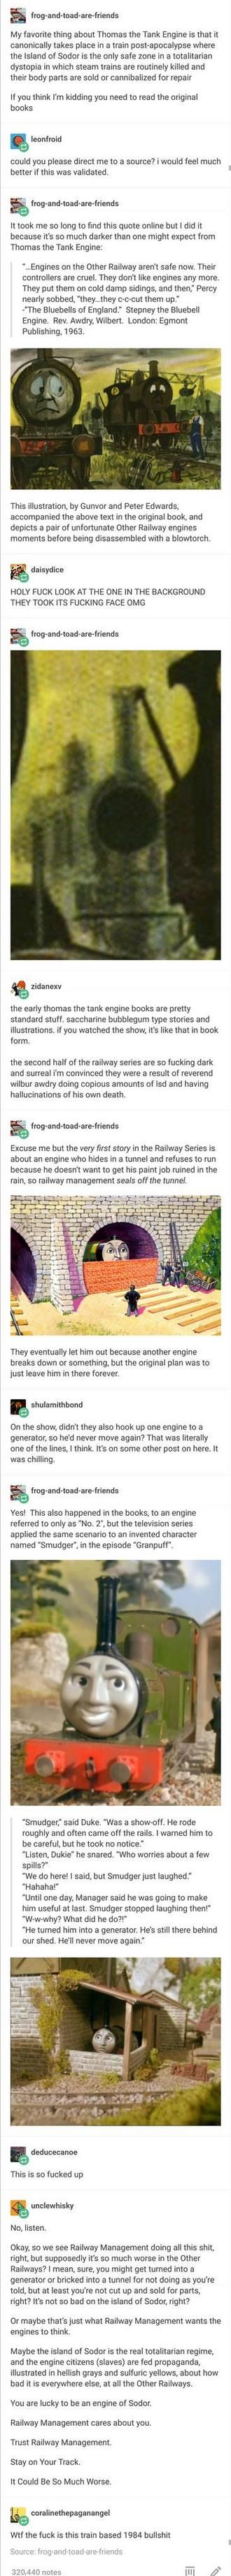 Thomas the Tank Engine Dystopian Discourse | now i need to fucking read this.